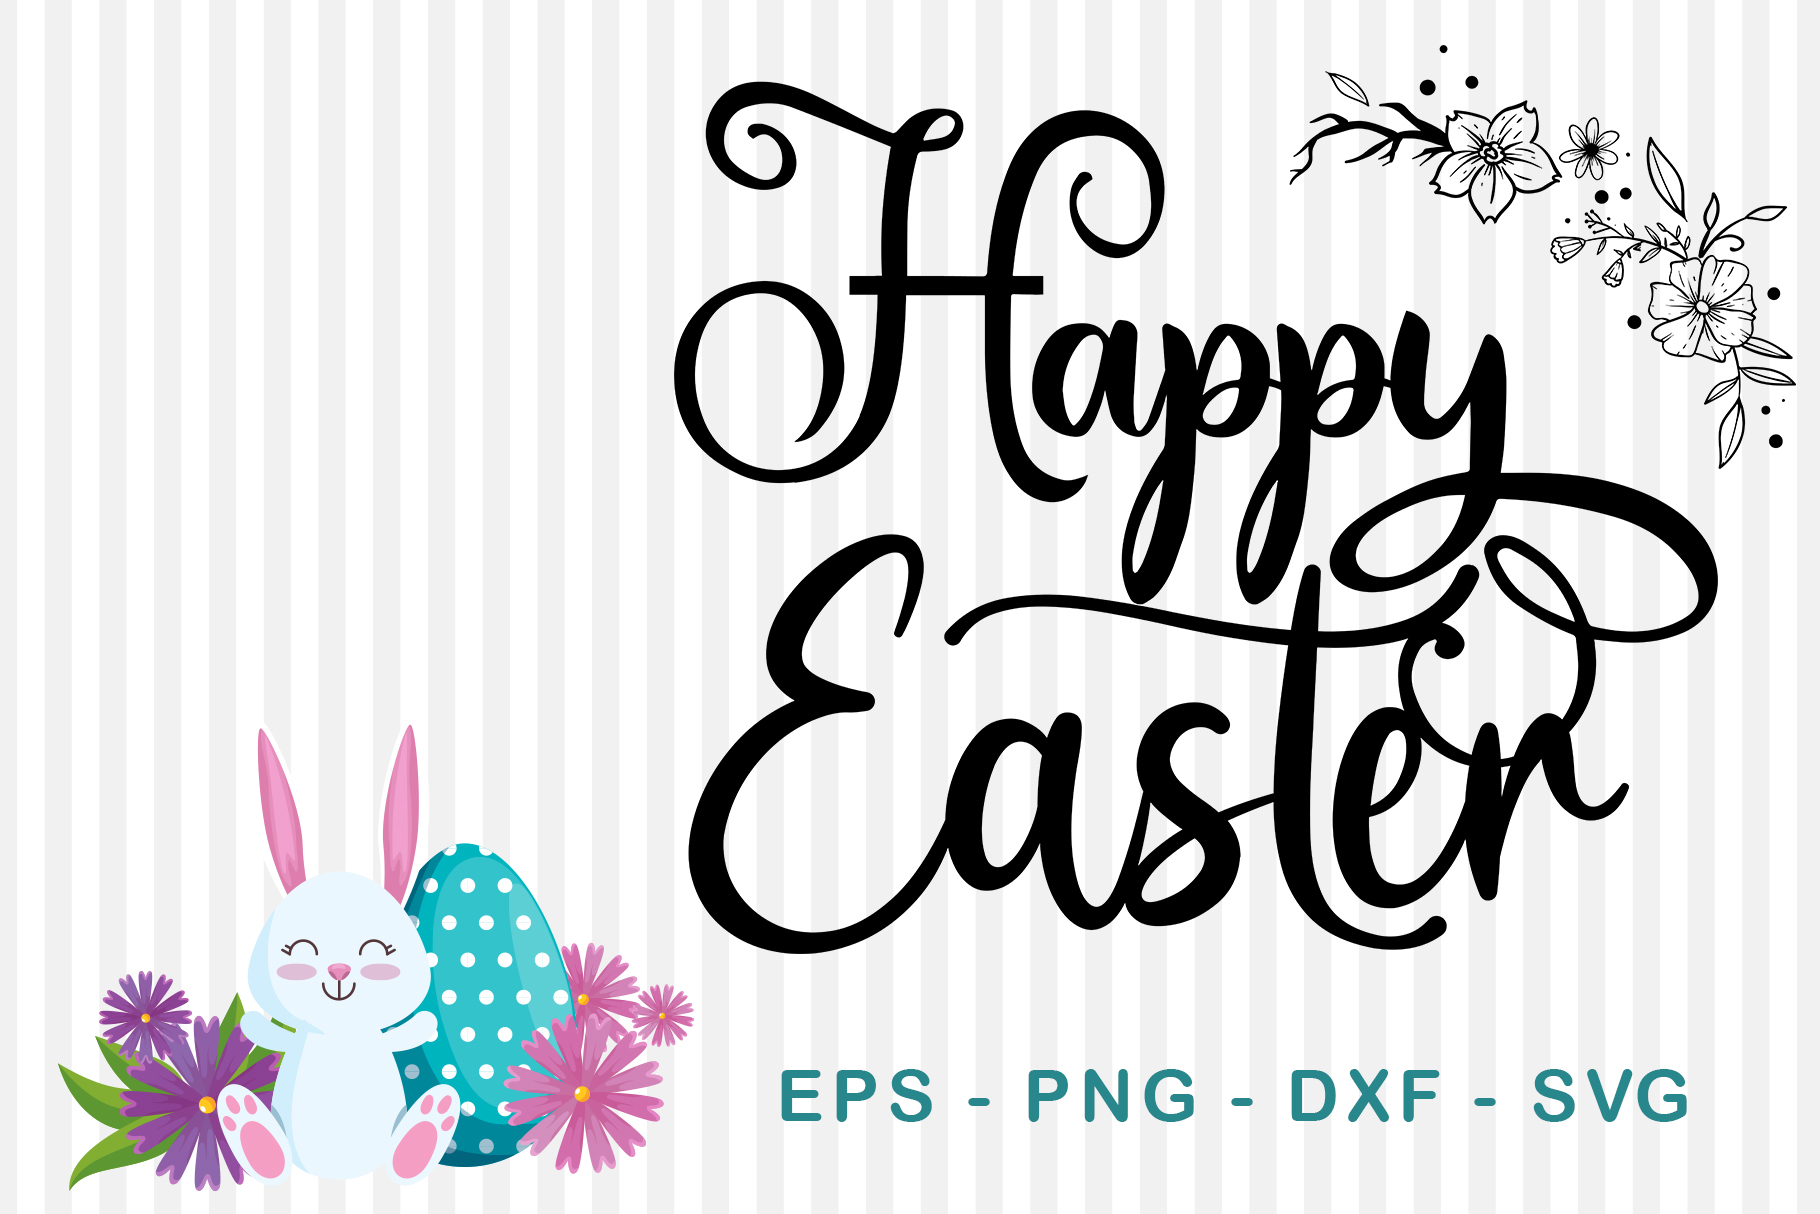 Download Free Happy Easter Graphic By Sharon Dmstudio Creative Fabrica for Cricut Explore, Silhouette and other cutting machines.